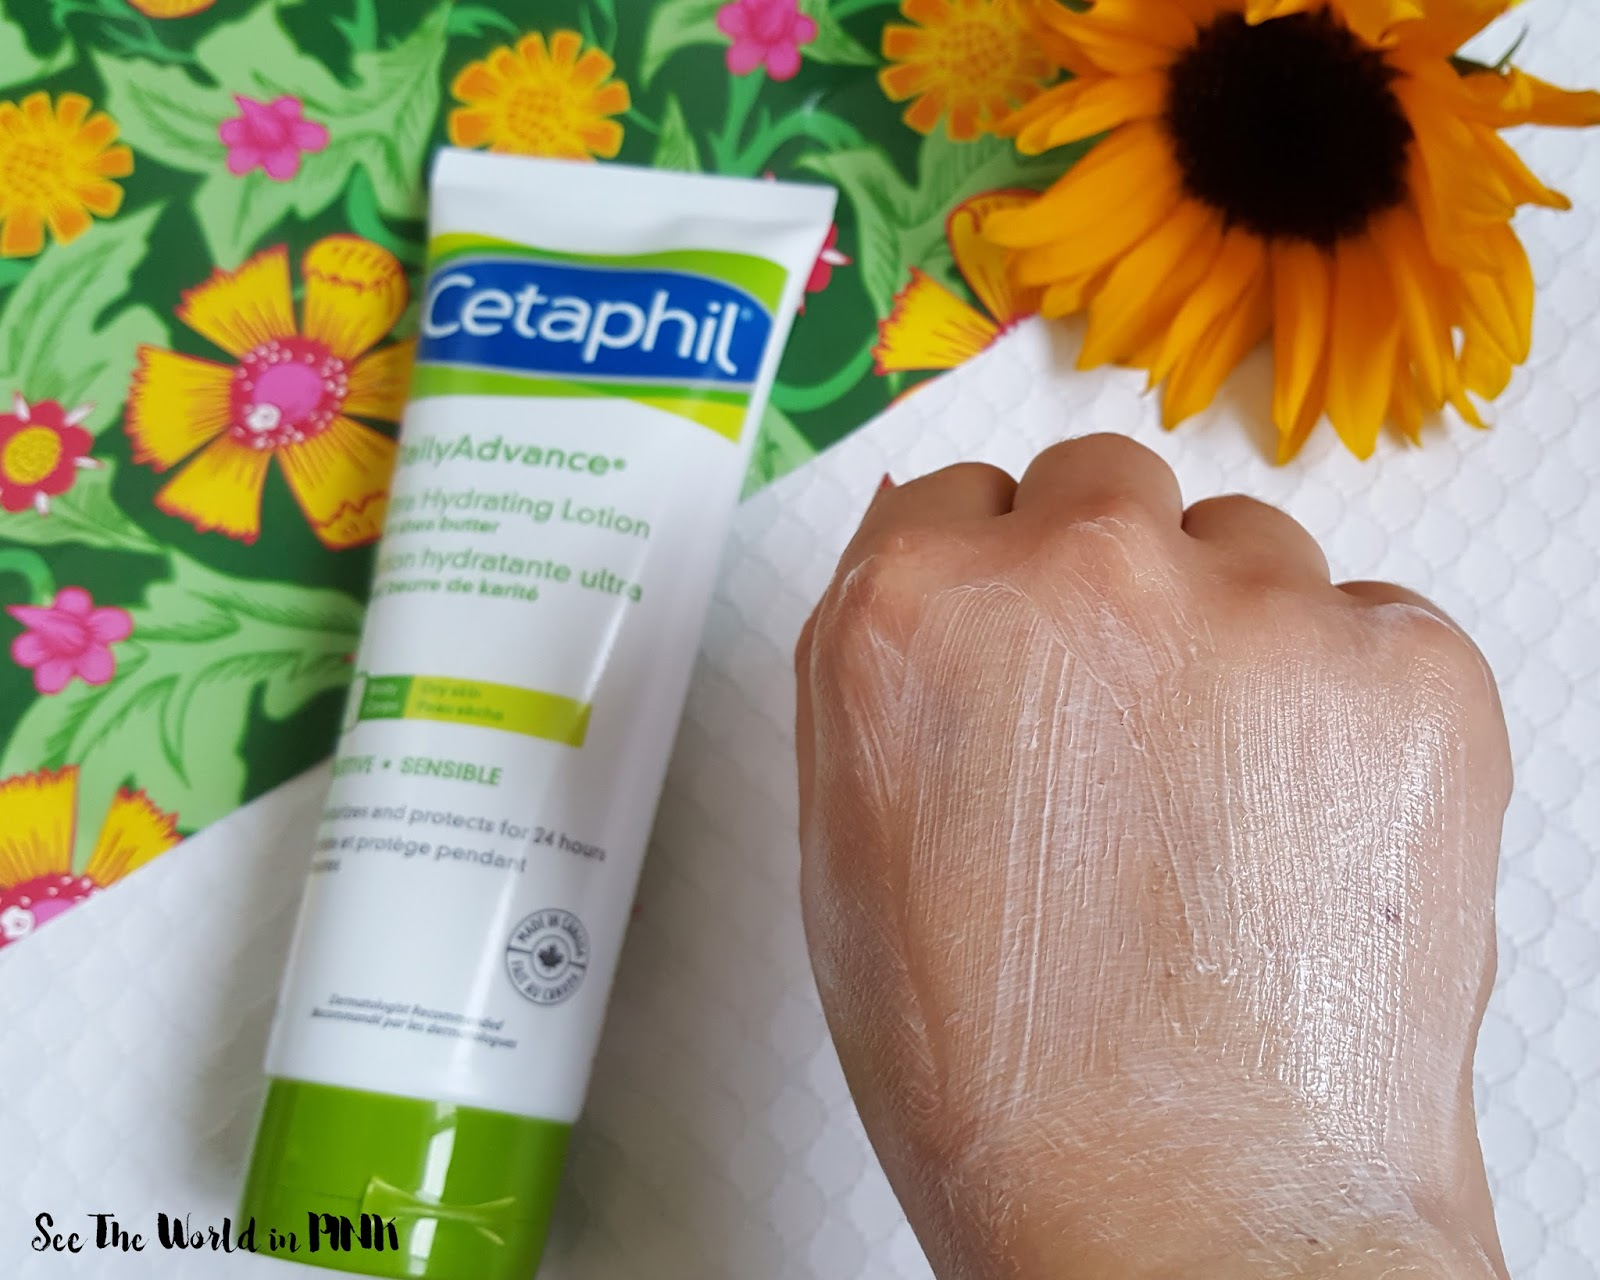 Skincare Sunday - Cetaphil Cleanser and Lotion Review + GIVEAWAY!